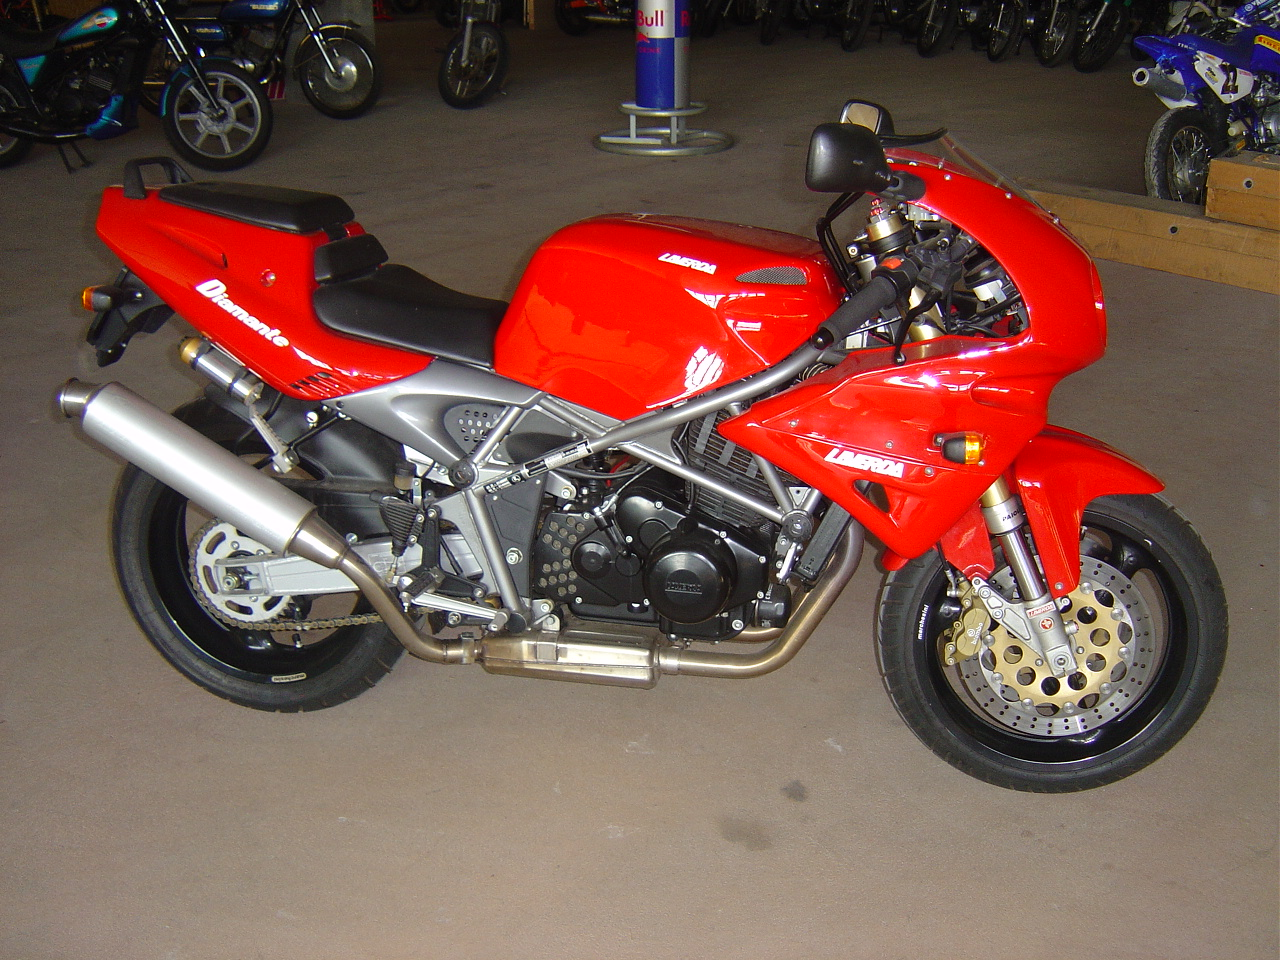 Laverda 750 Ghost Strike images #101742